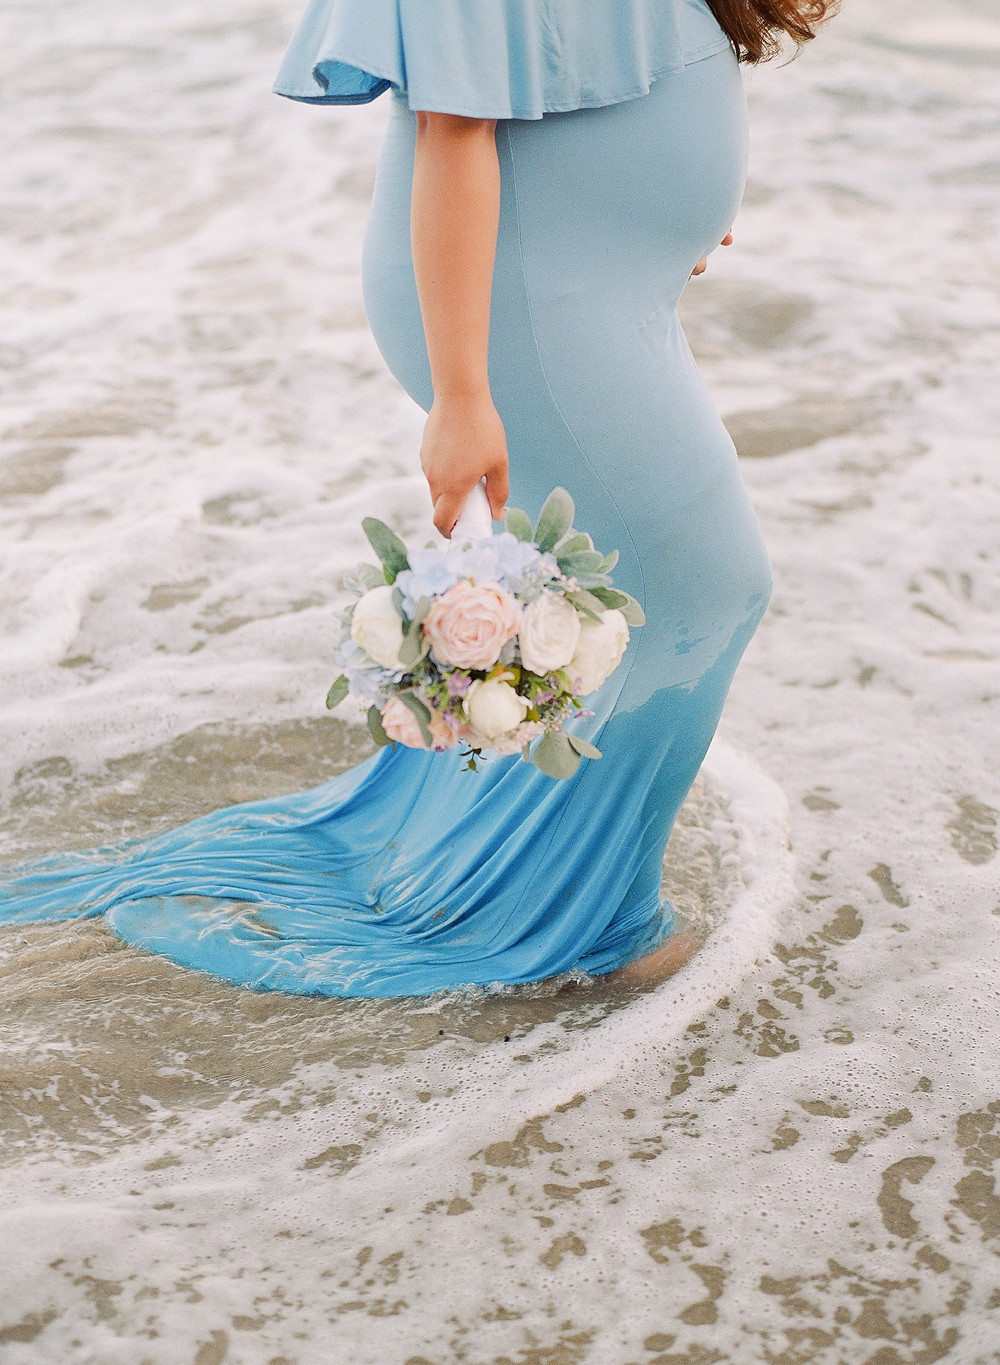 Maternity portraits of mom in Malibu wearing blue dress in the water